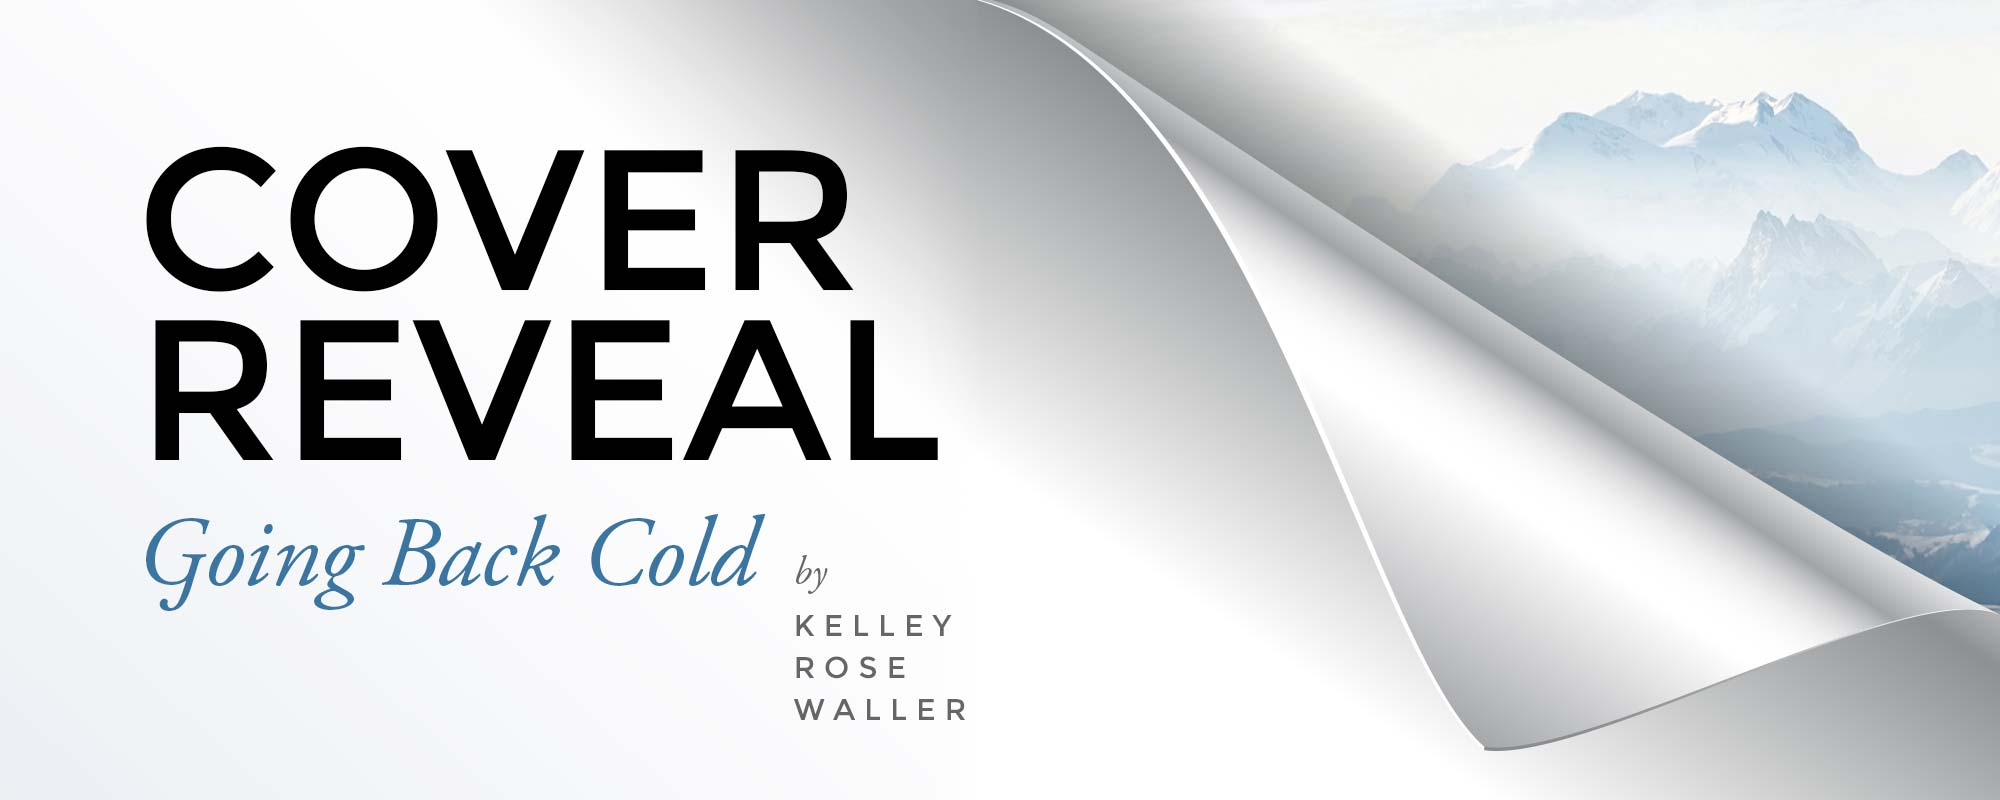 Cover Reveal for Going Back Cold by Kelley Rose Waller!